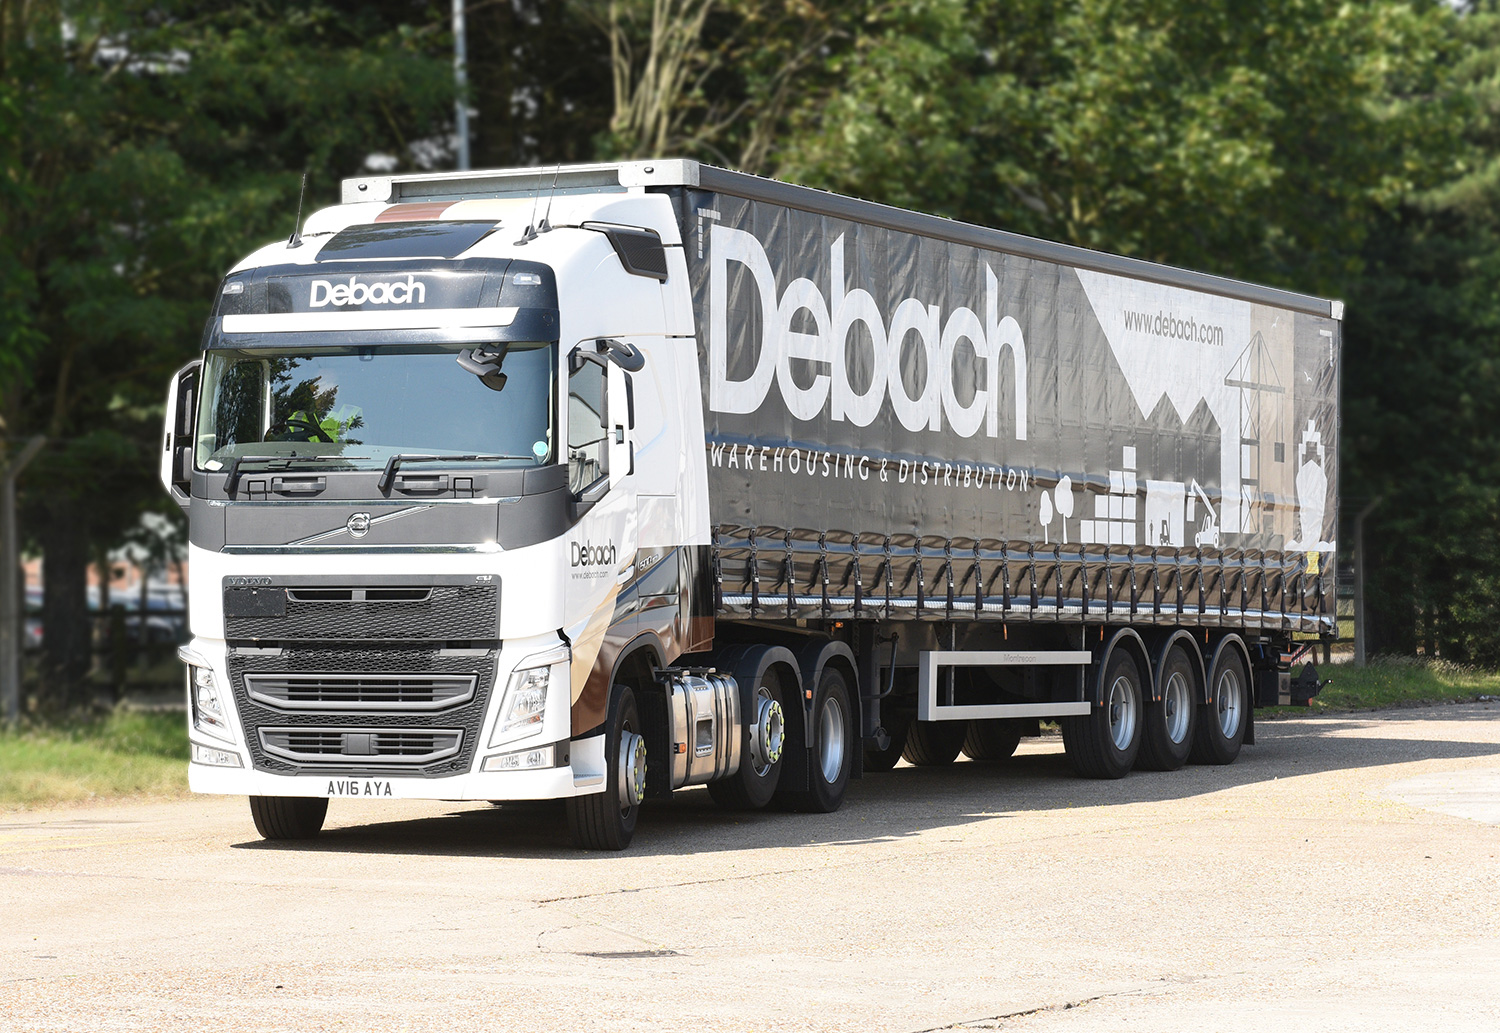 Debach lorry on the road